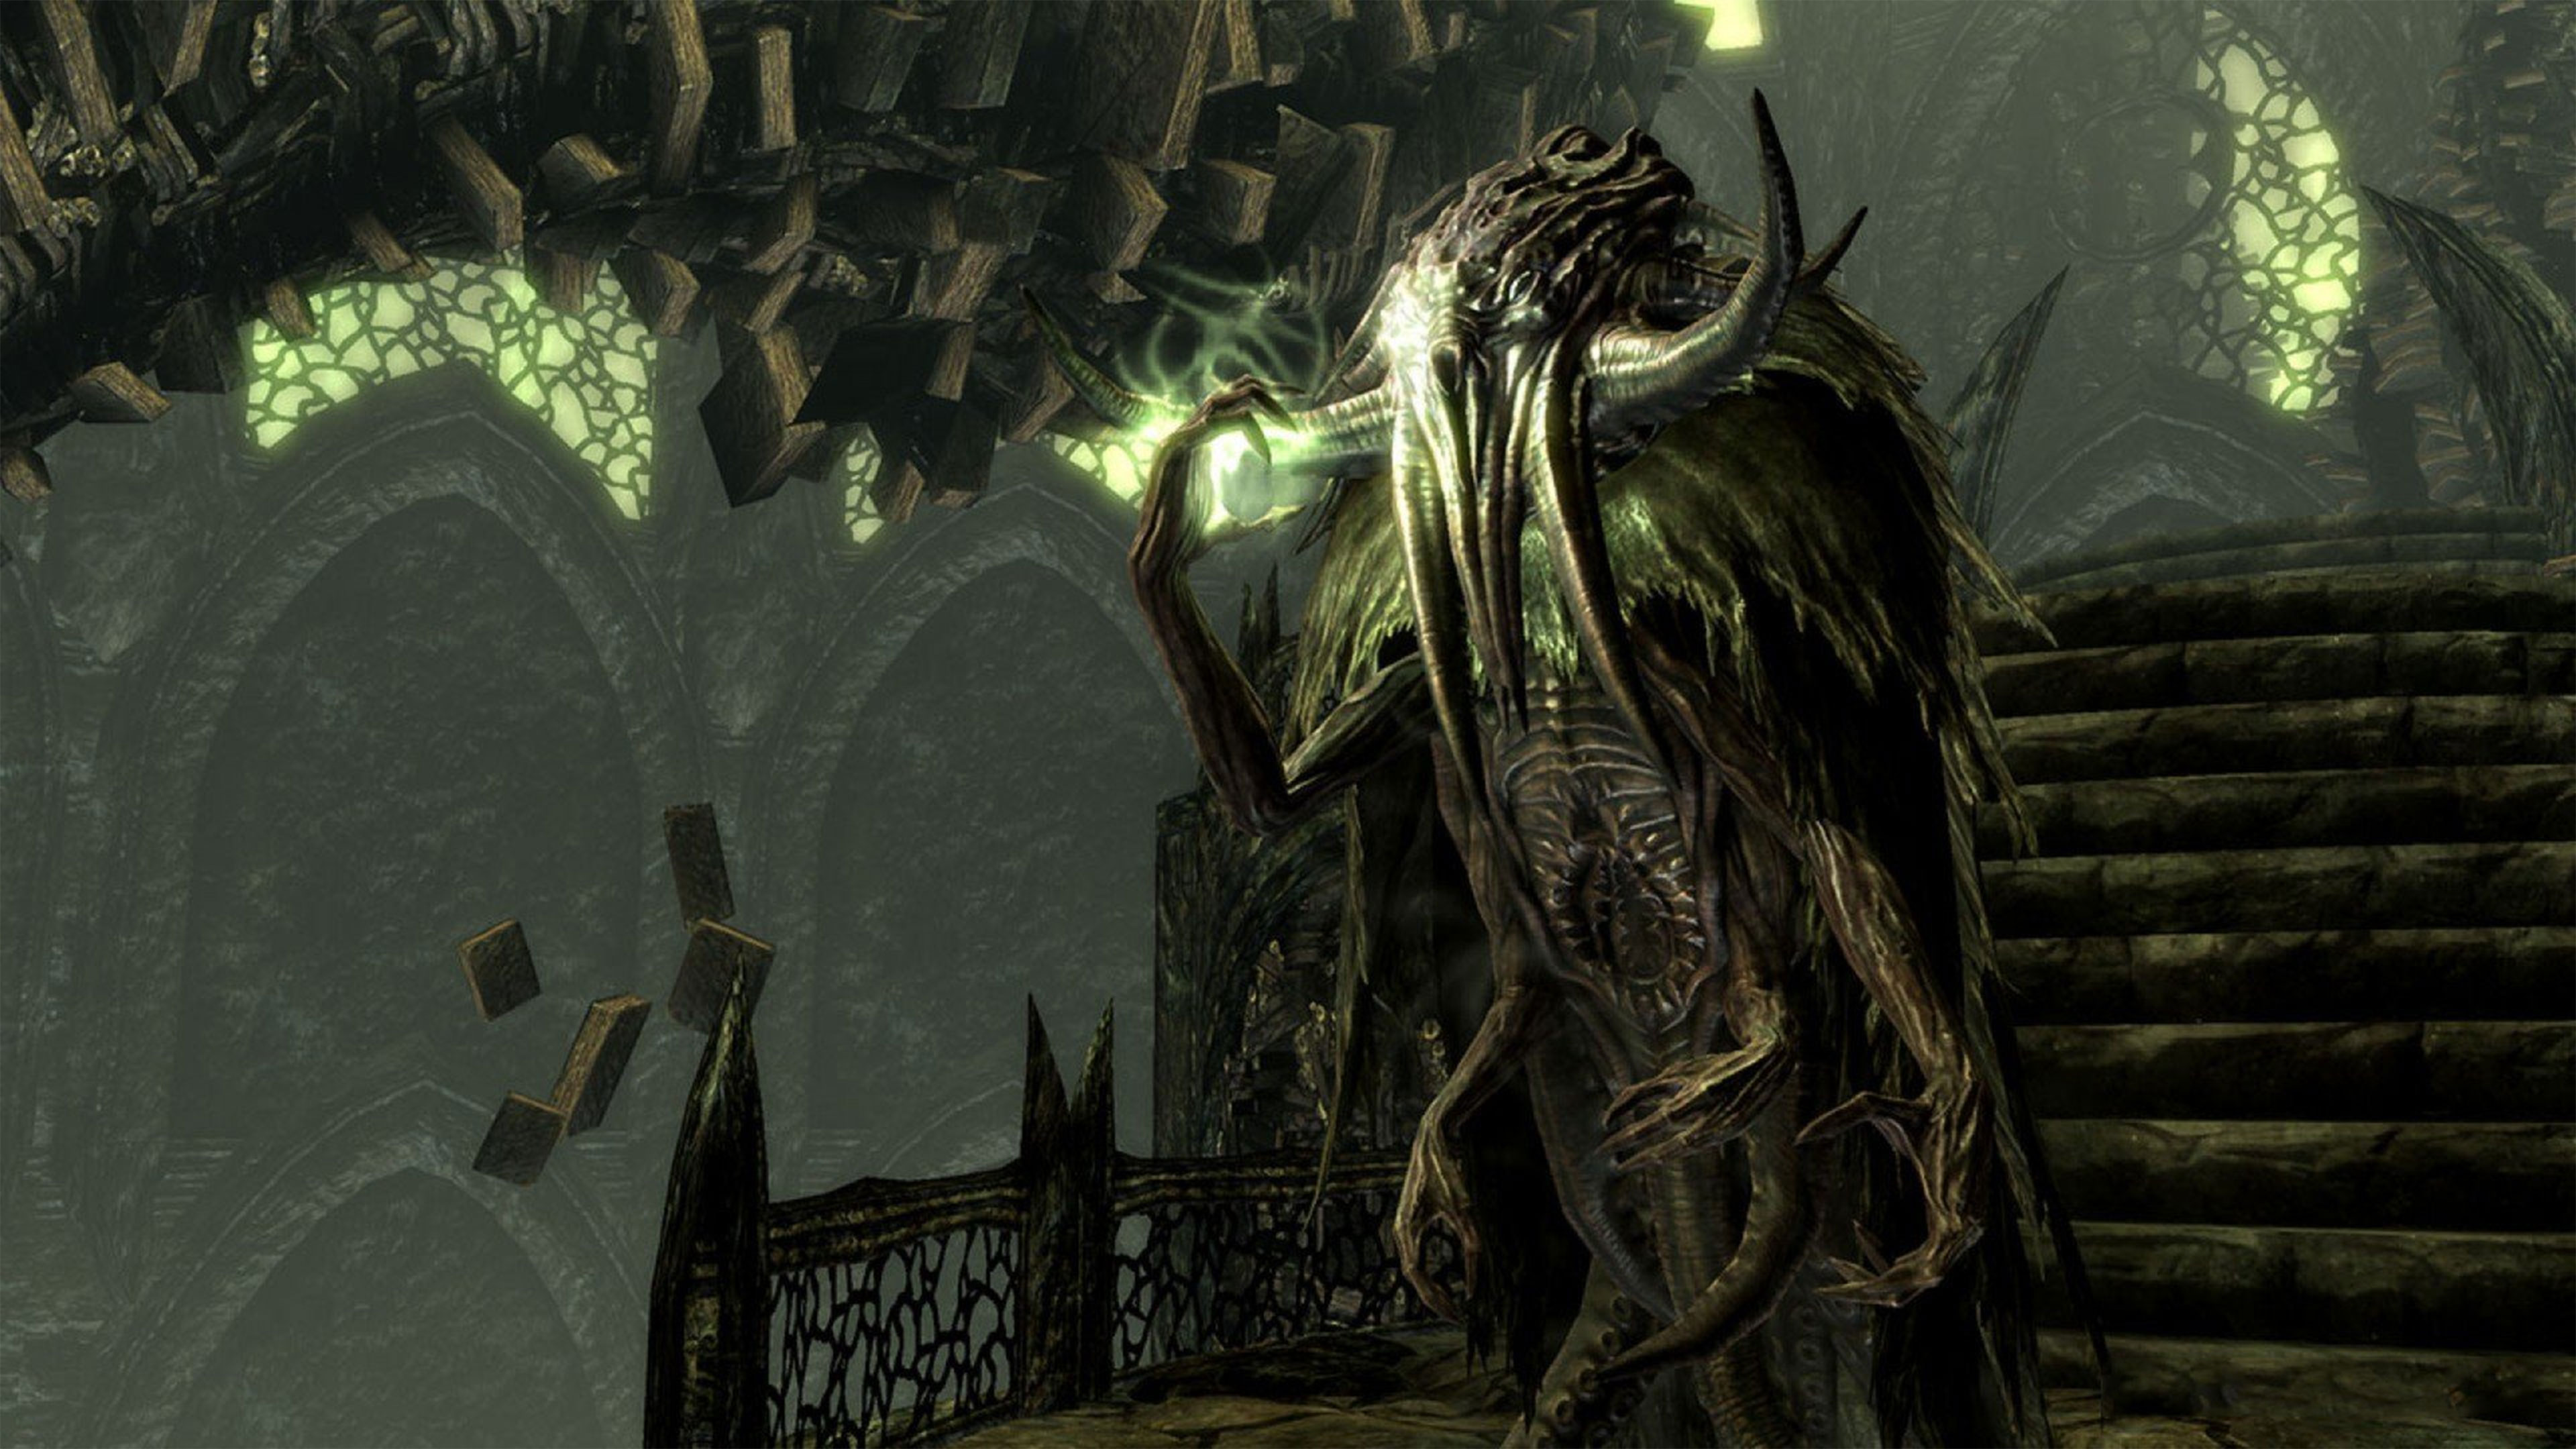 Hp Lovecraft Art Wallpapers: Call Of Cthulhu Wallpapers In Ultra HD